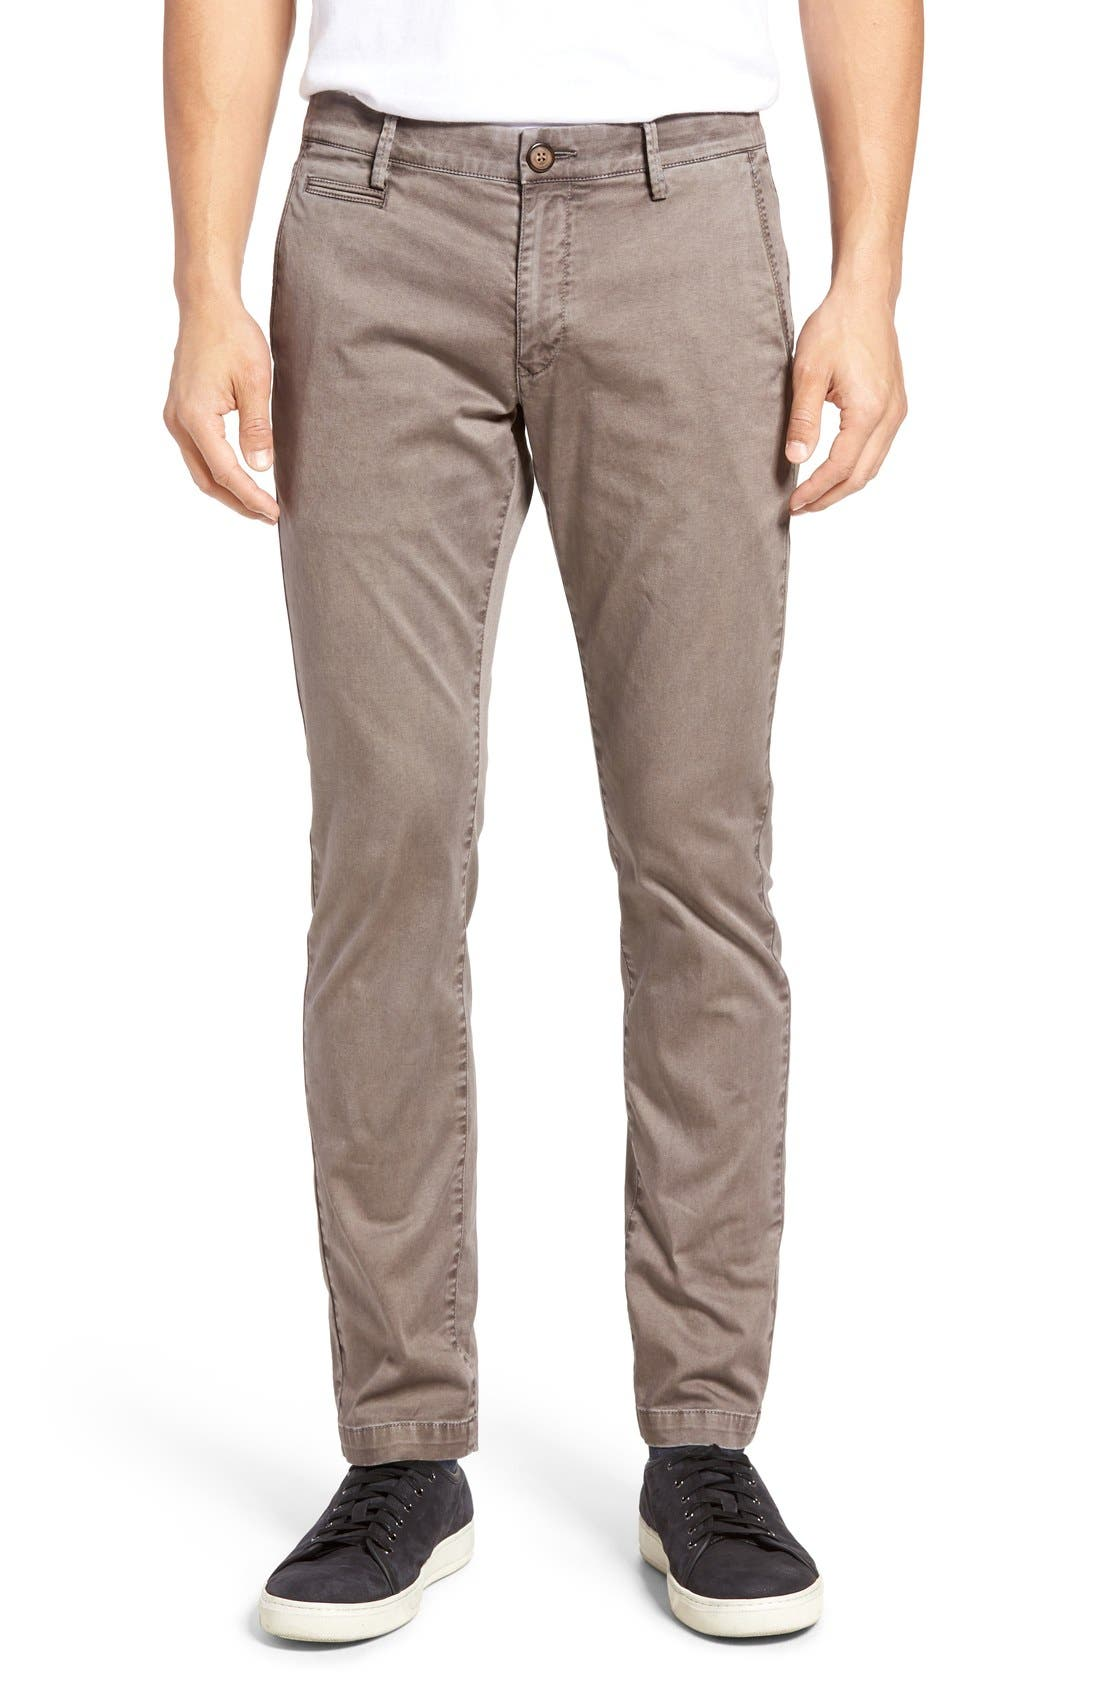 Enzyme Washed Chinos,                             Main thumbnail 1, color,                             Grey